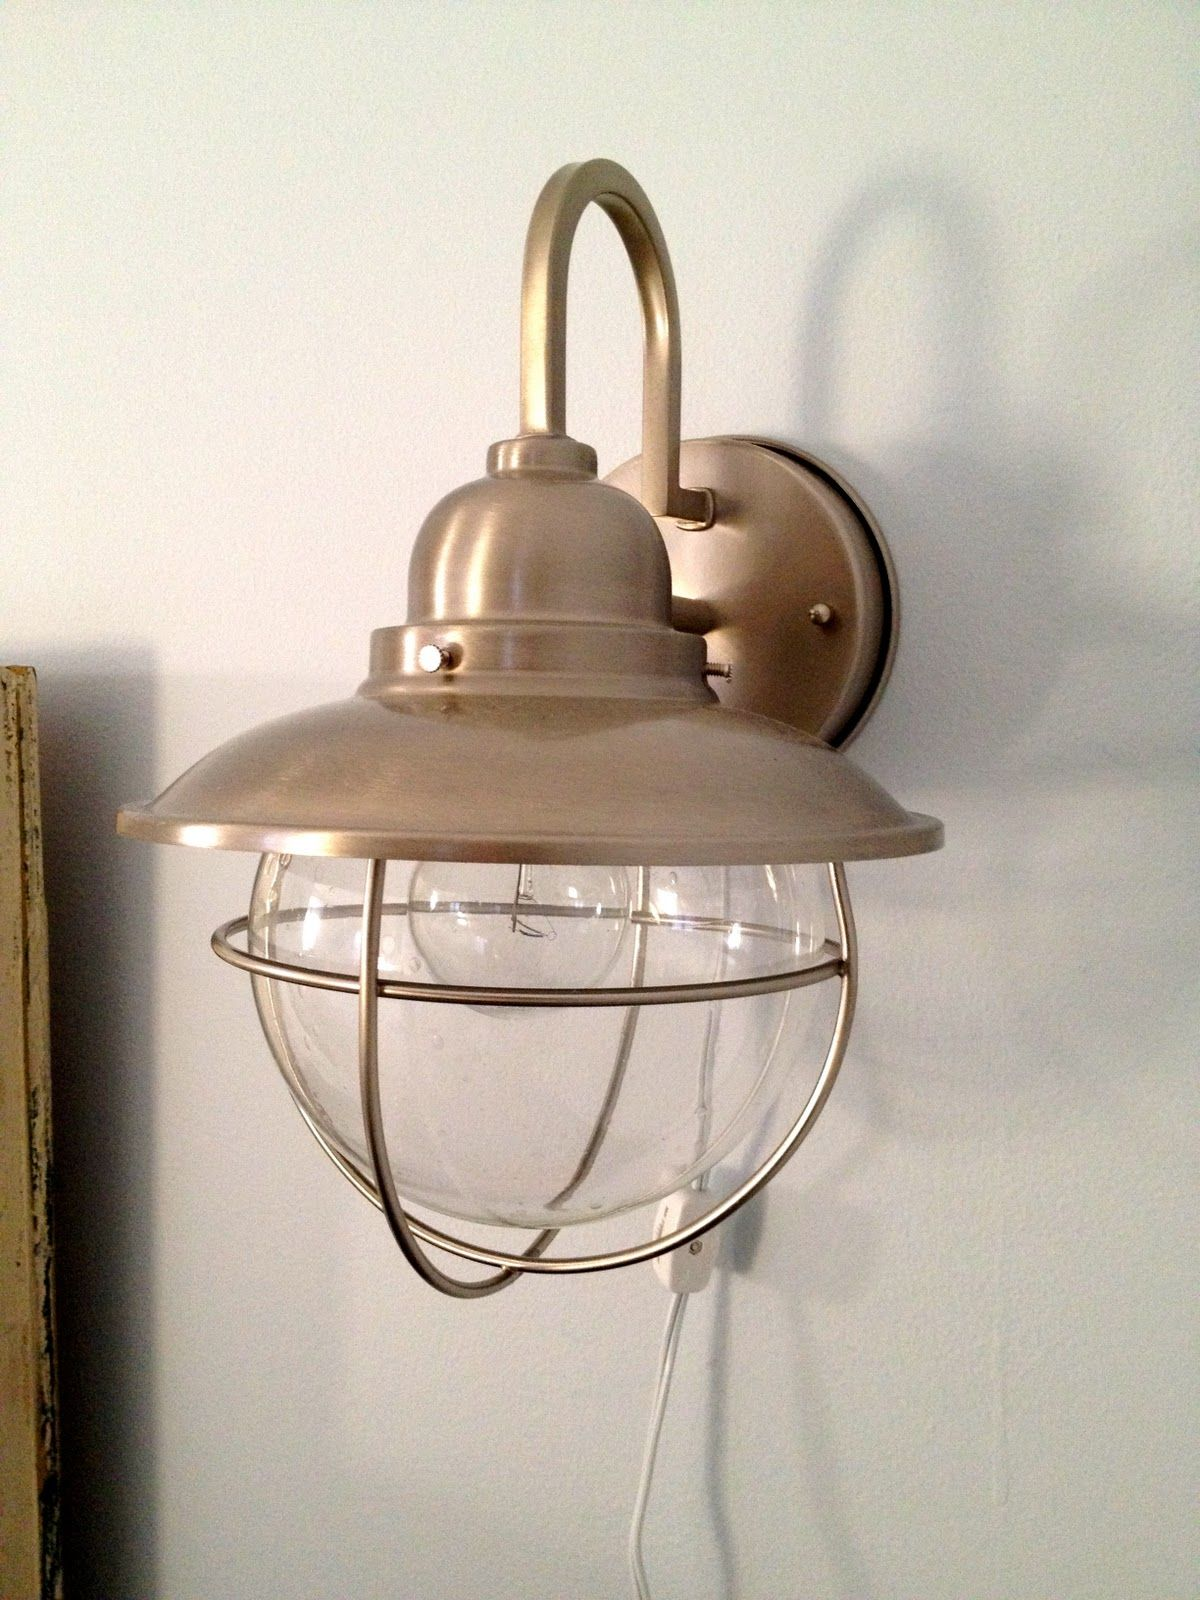 How To Make A Hard Wire Wall Light Into A Plug In Wall